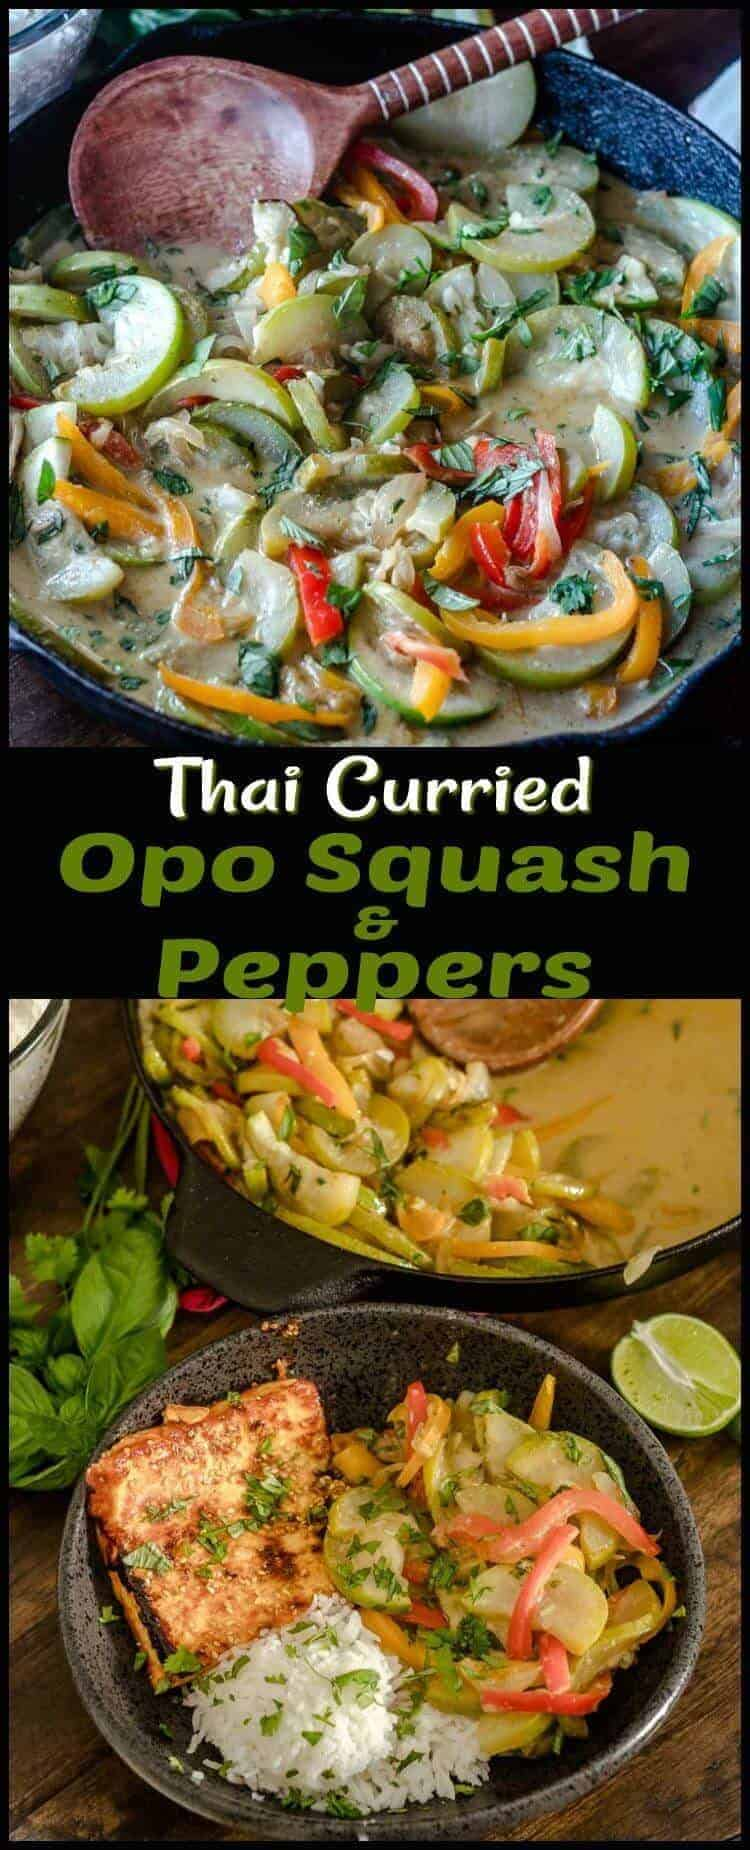 Thai Curried Opo Squash and Peppers - coconut milk and Thai curry paste flavor this healthy stir-fried dish! #oposquash #Thaiveggies #vegetablesides